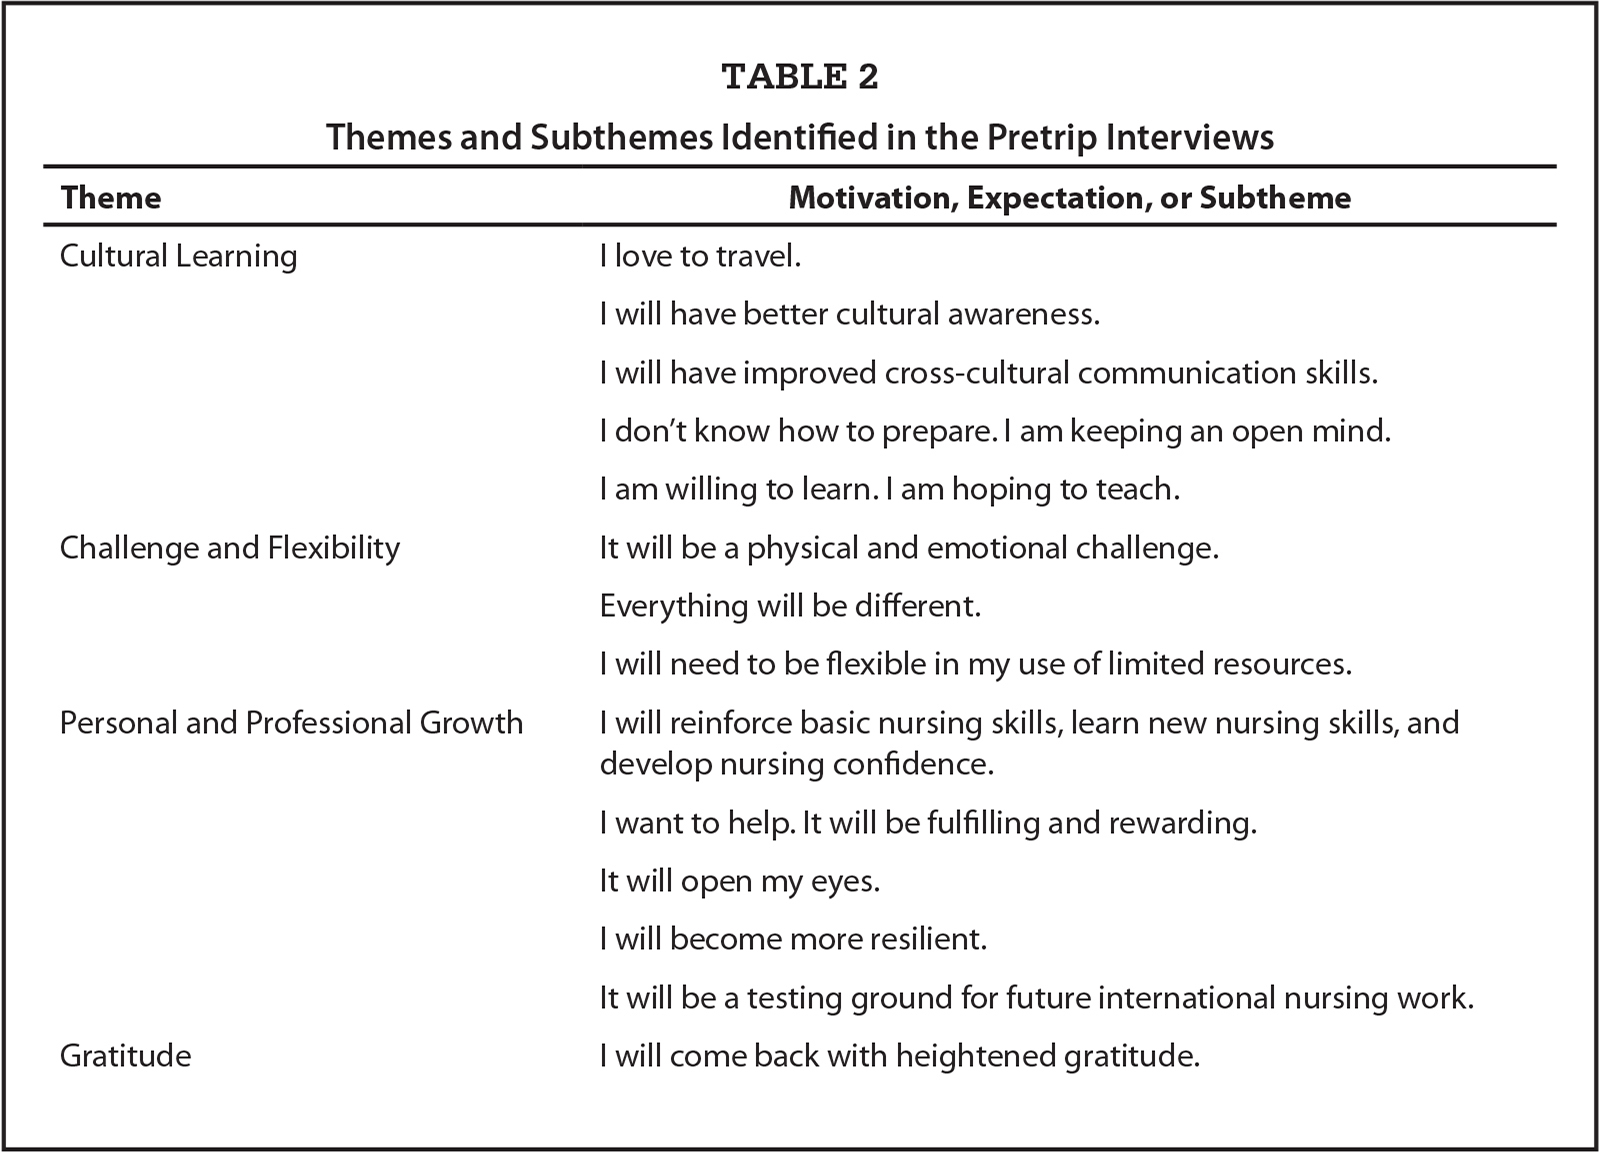 Themes and Subthemes Identified in the Pretrip Interviews